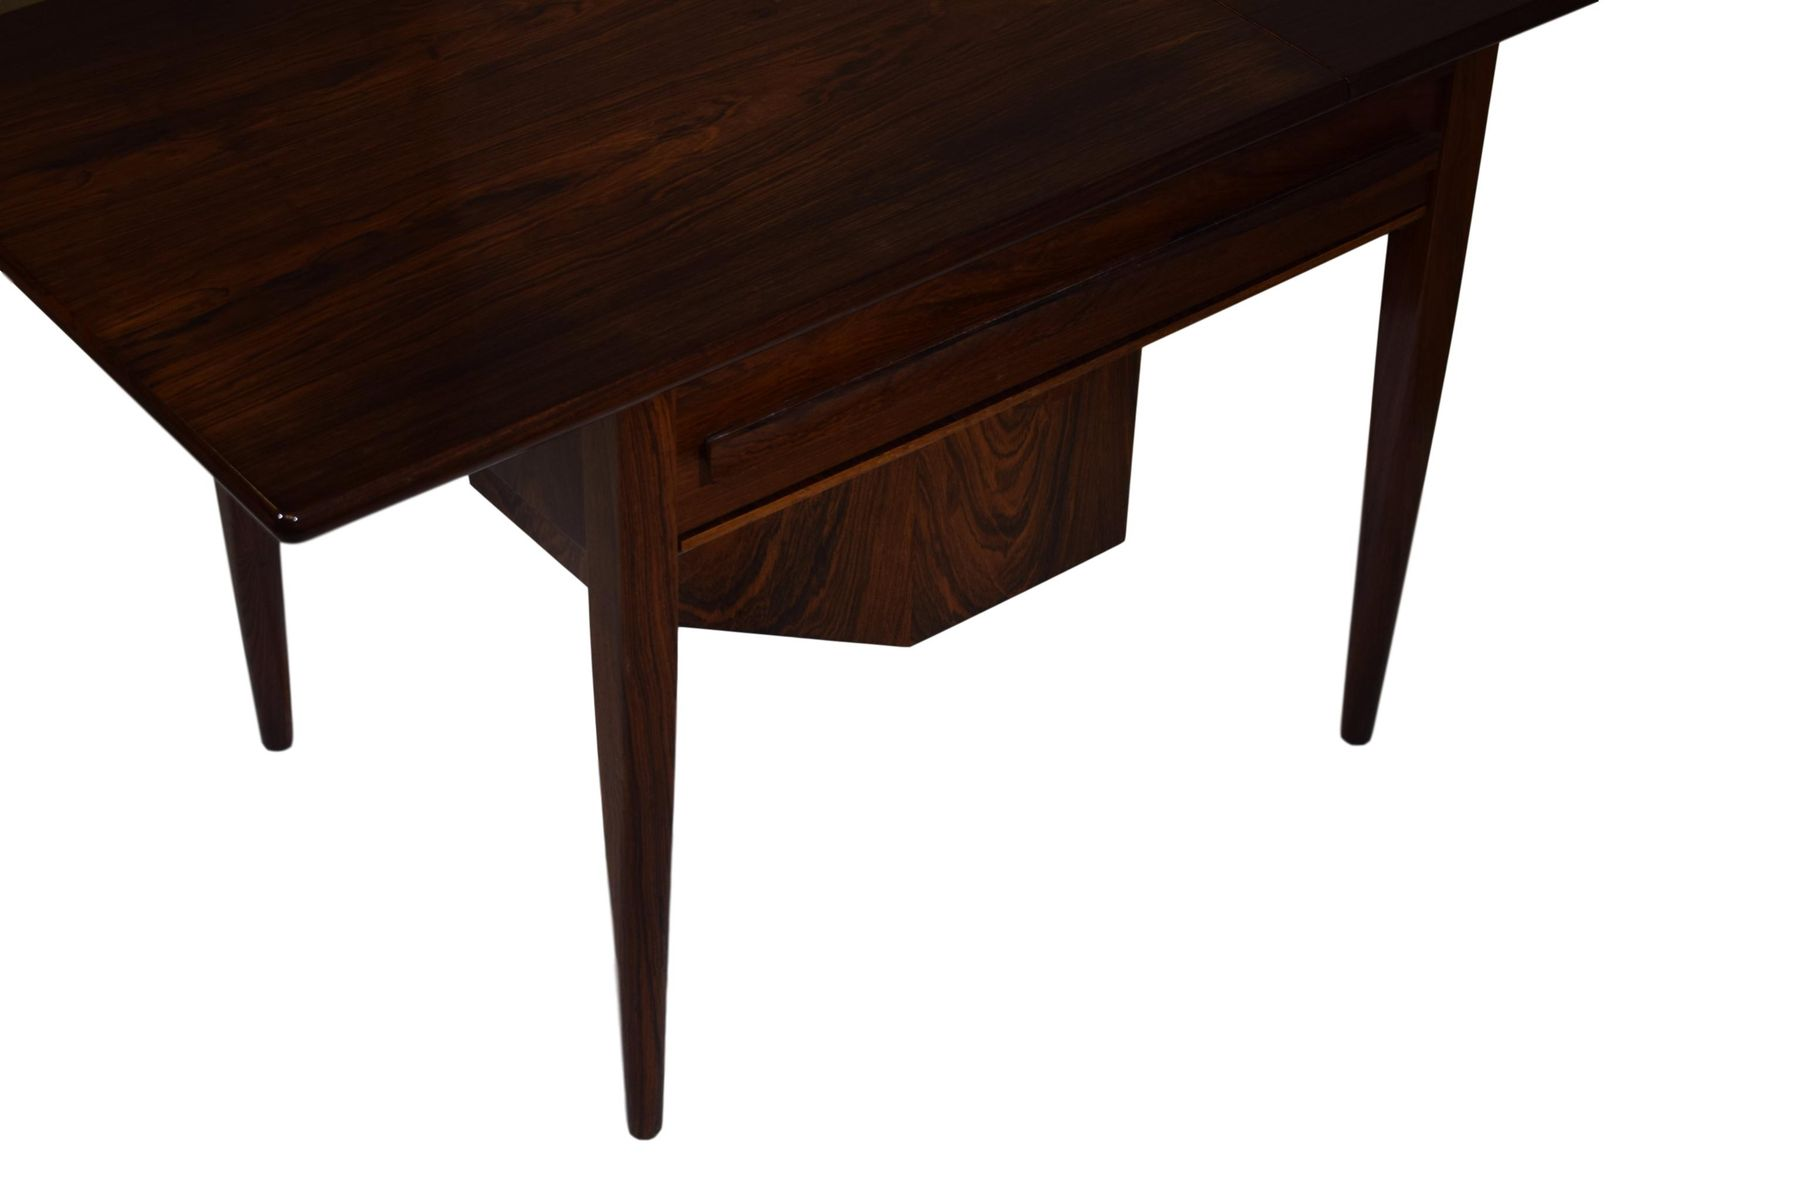 100 Drop Leaf Coffee Tables Intercon Small Space  : mid century rosewood veneer sewing table with drop leaf by johannes andersen 5 from 45.32.79.15 size 1800 x 1200 jpeg 61kB